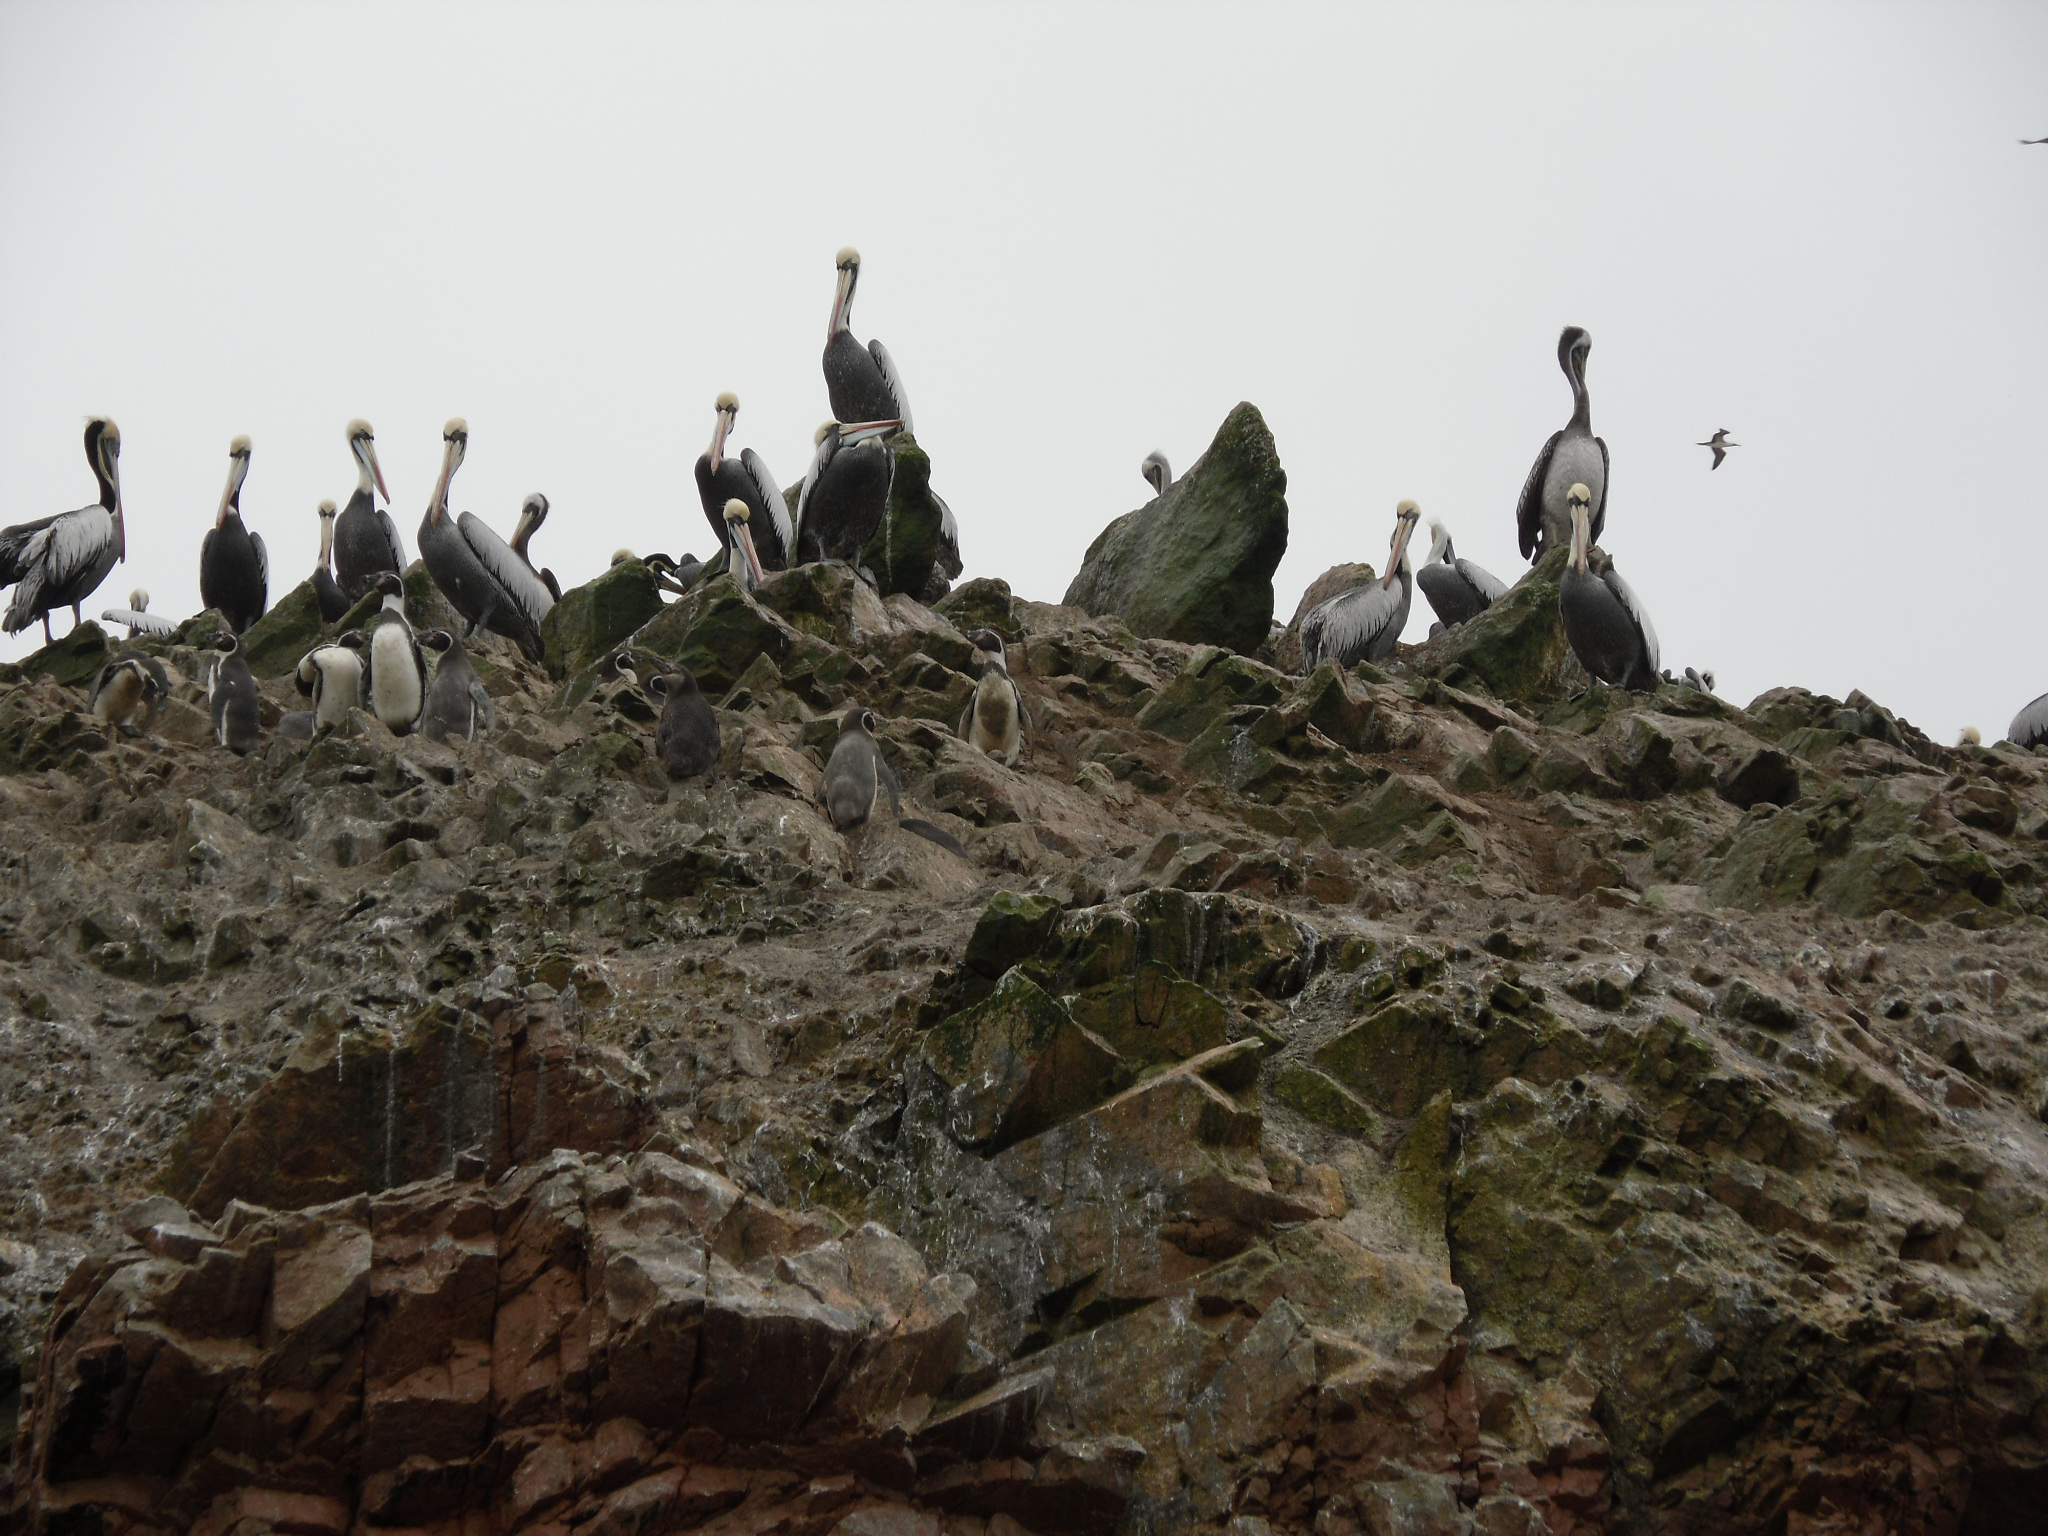 Pelicans and Penguins of the Ballestas Islands, Peru